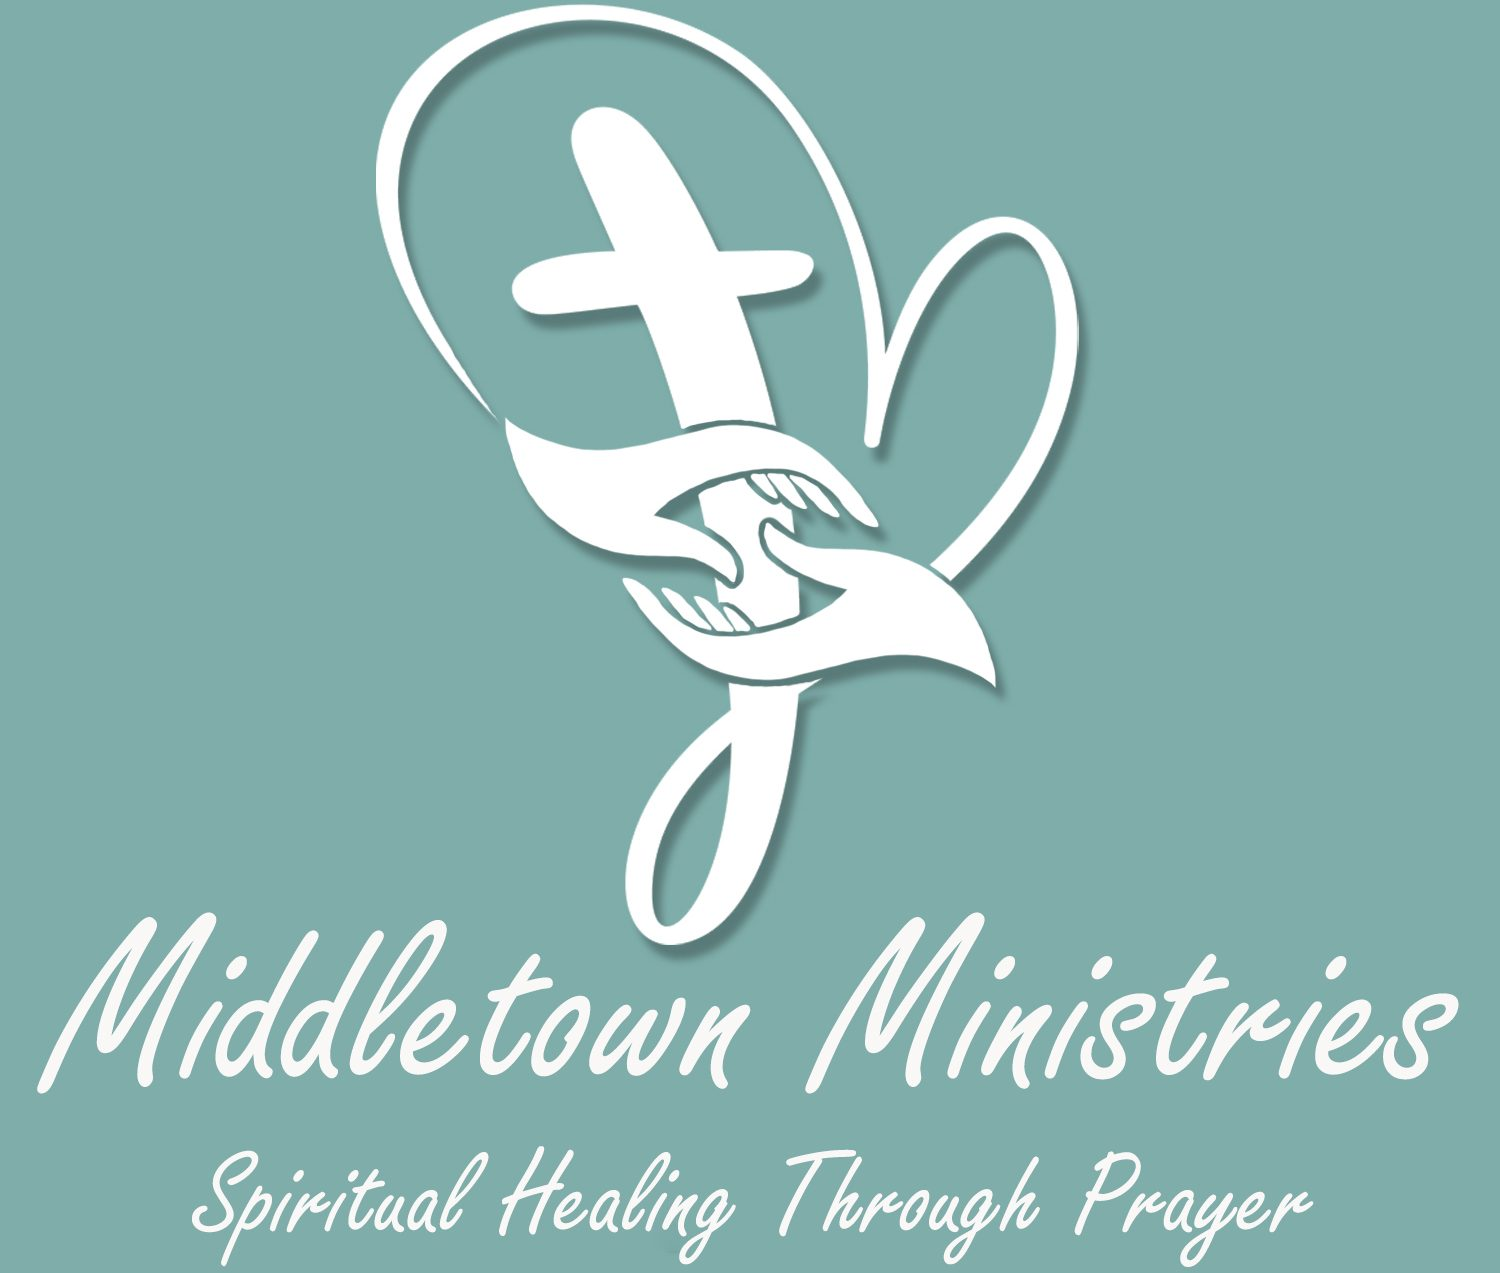 Middletown Ministries